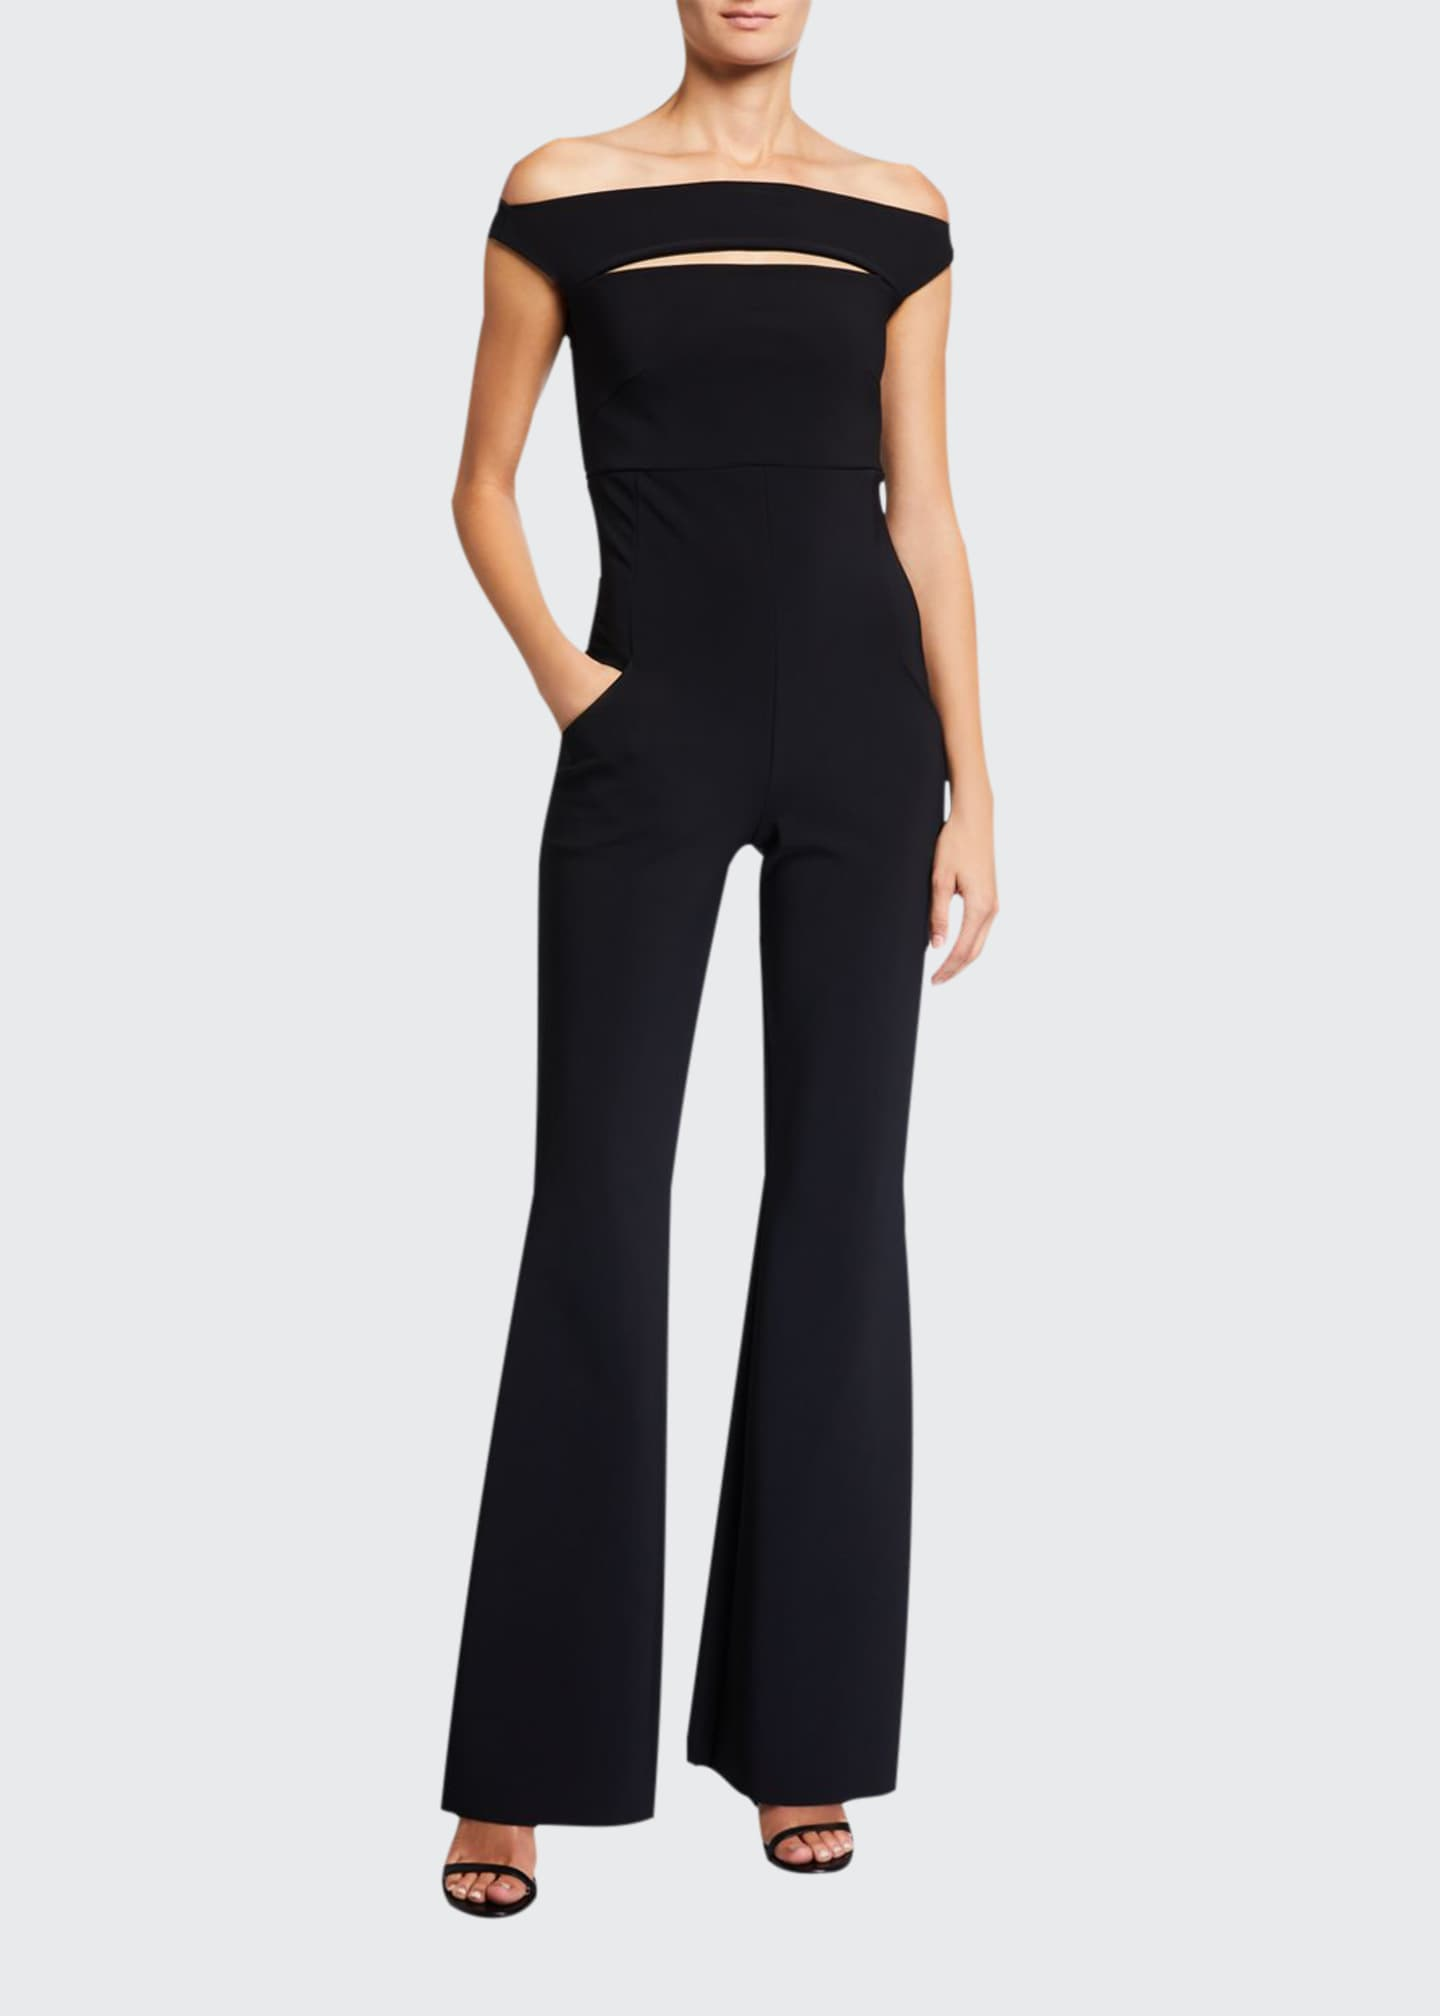 Chiara Boni La Petite Robe Rebecca Slash-Neck Jumpsuit